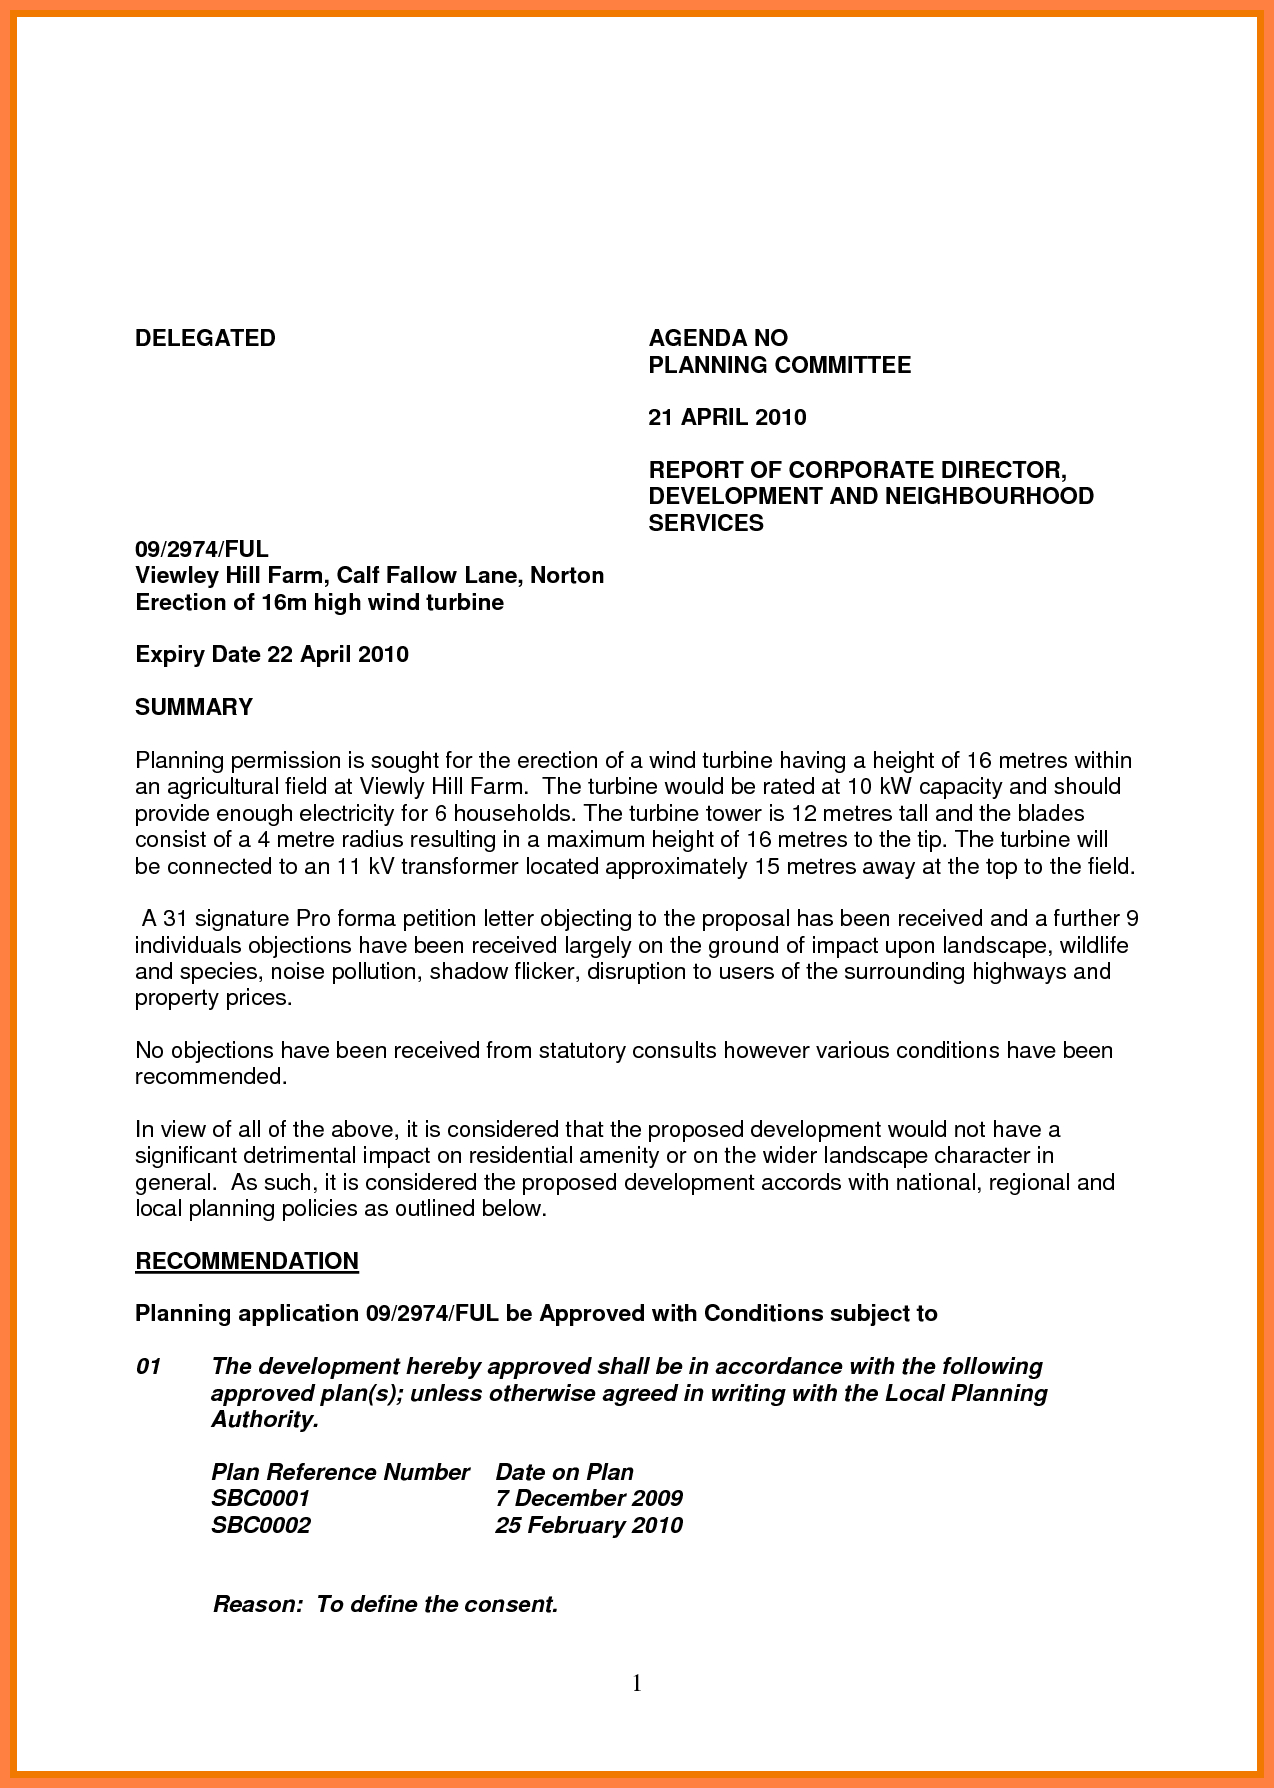 Formal Petition Letter Template - How to Make A Petition Letter Acurnamedia